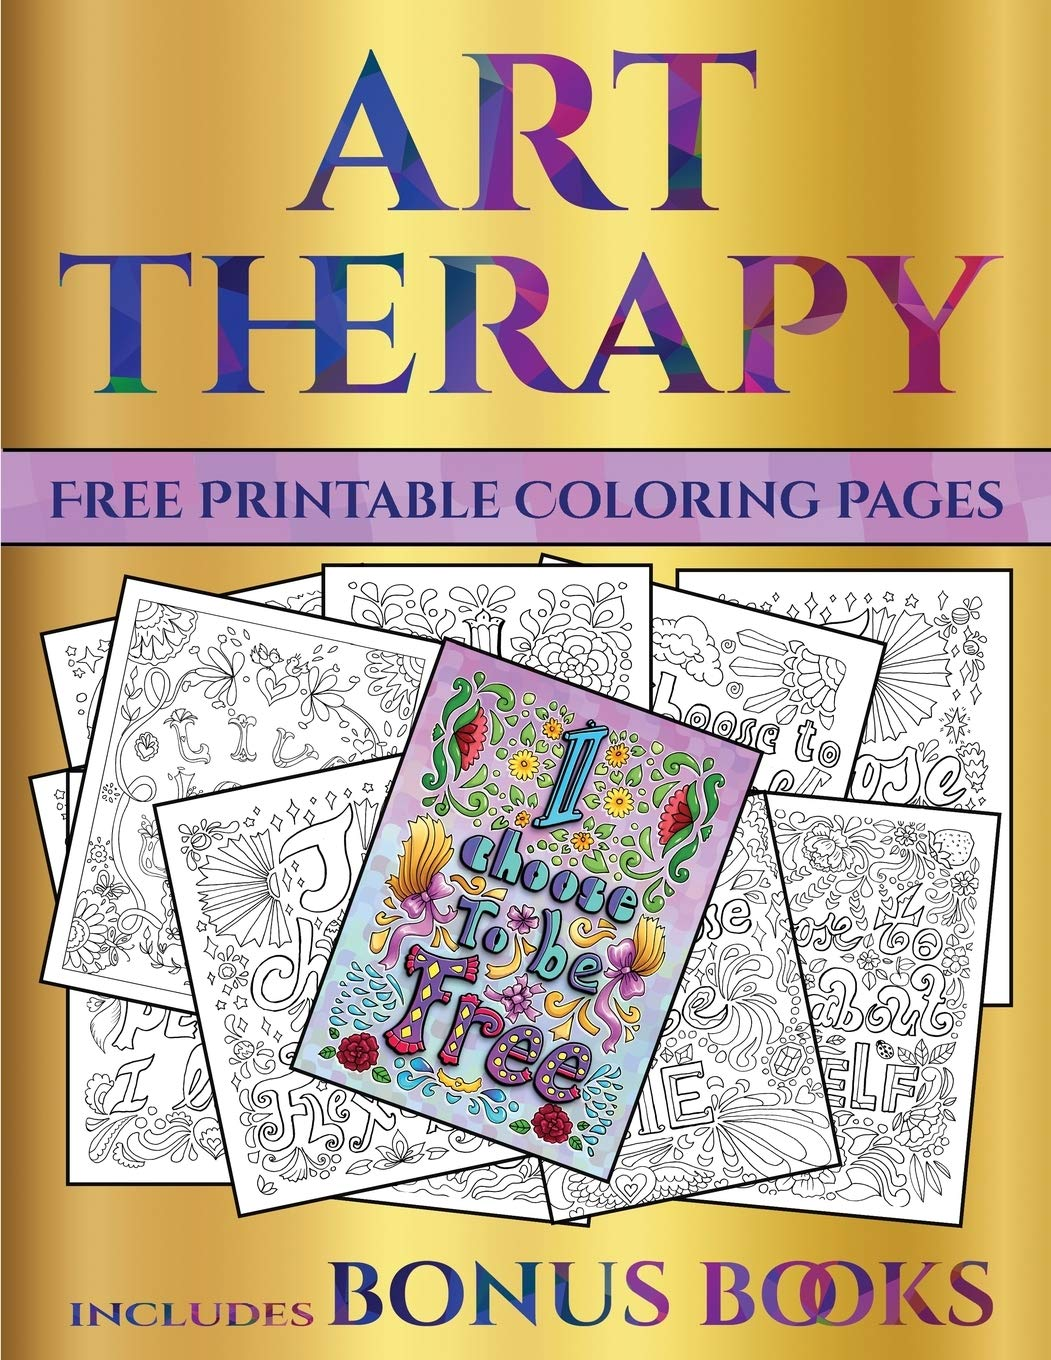 Free Adult Coloring Pages: Detailed Printable Coloring Pages for ... | 1360x1051